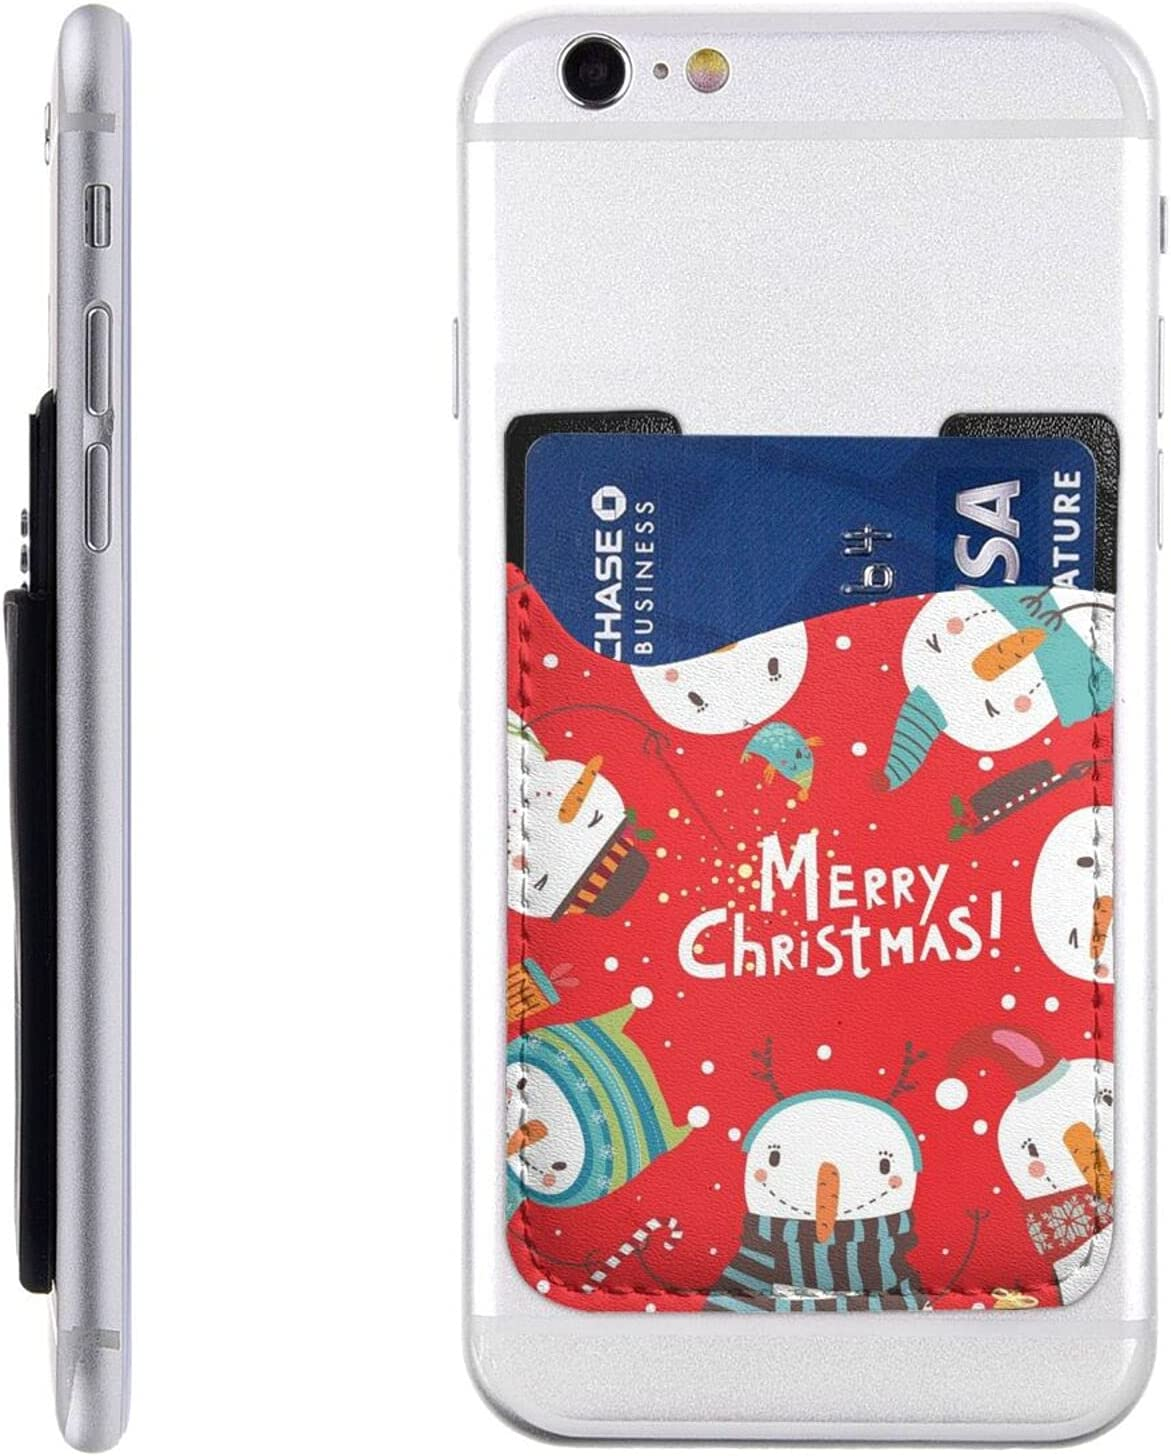 Xmas Snowman Phone Card Holder Wallet S Stick On Cell Miami New arrival Mall